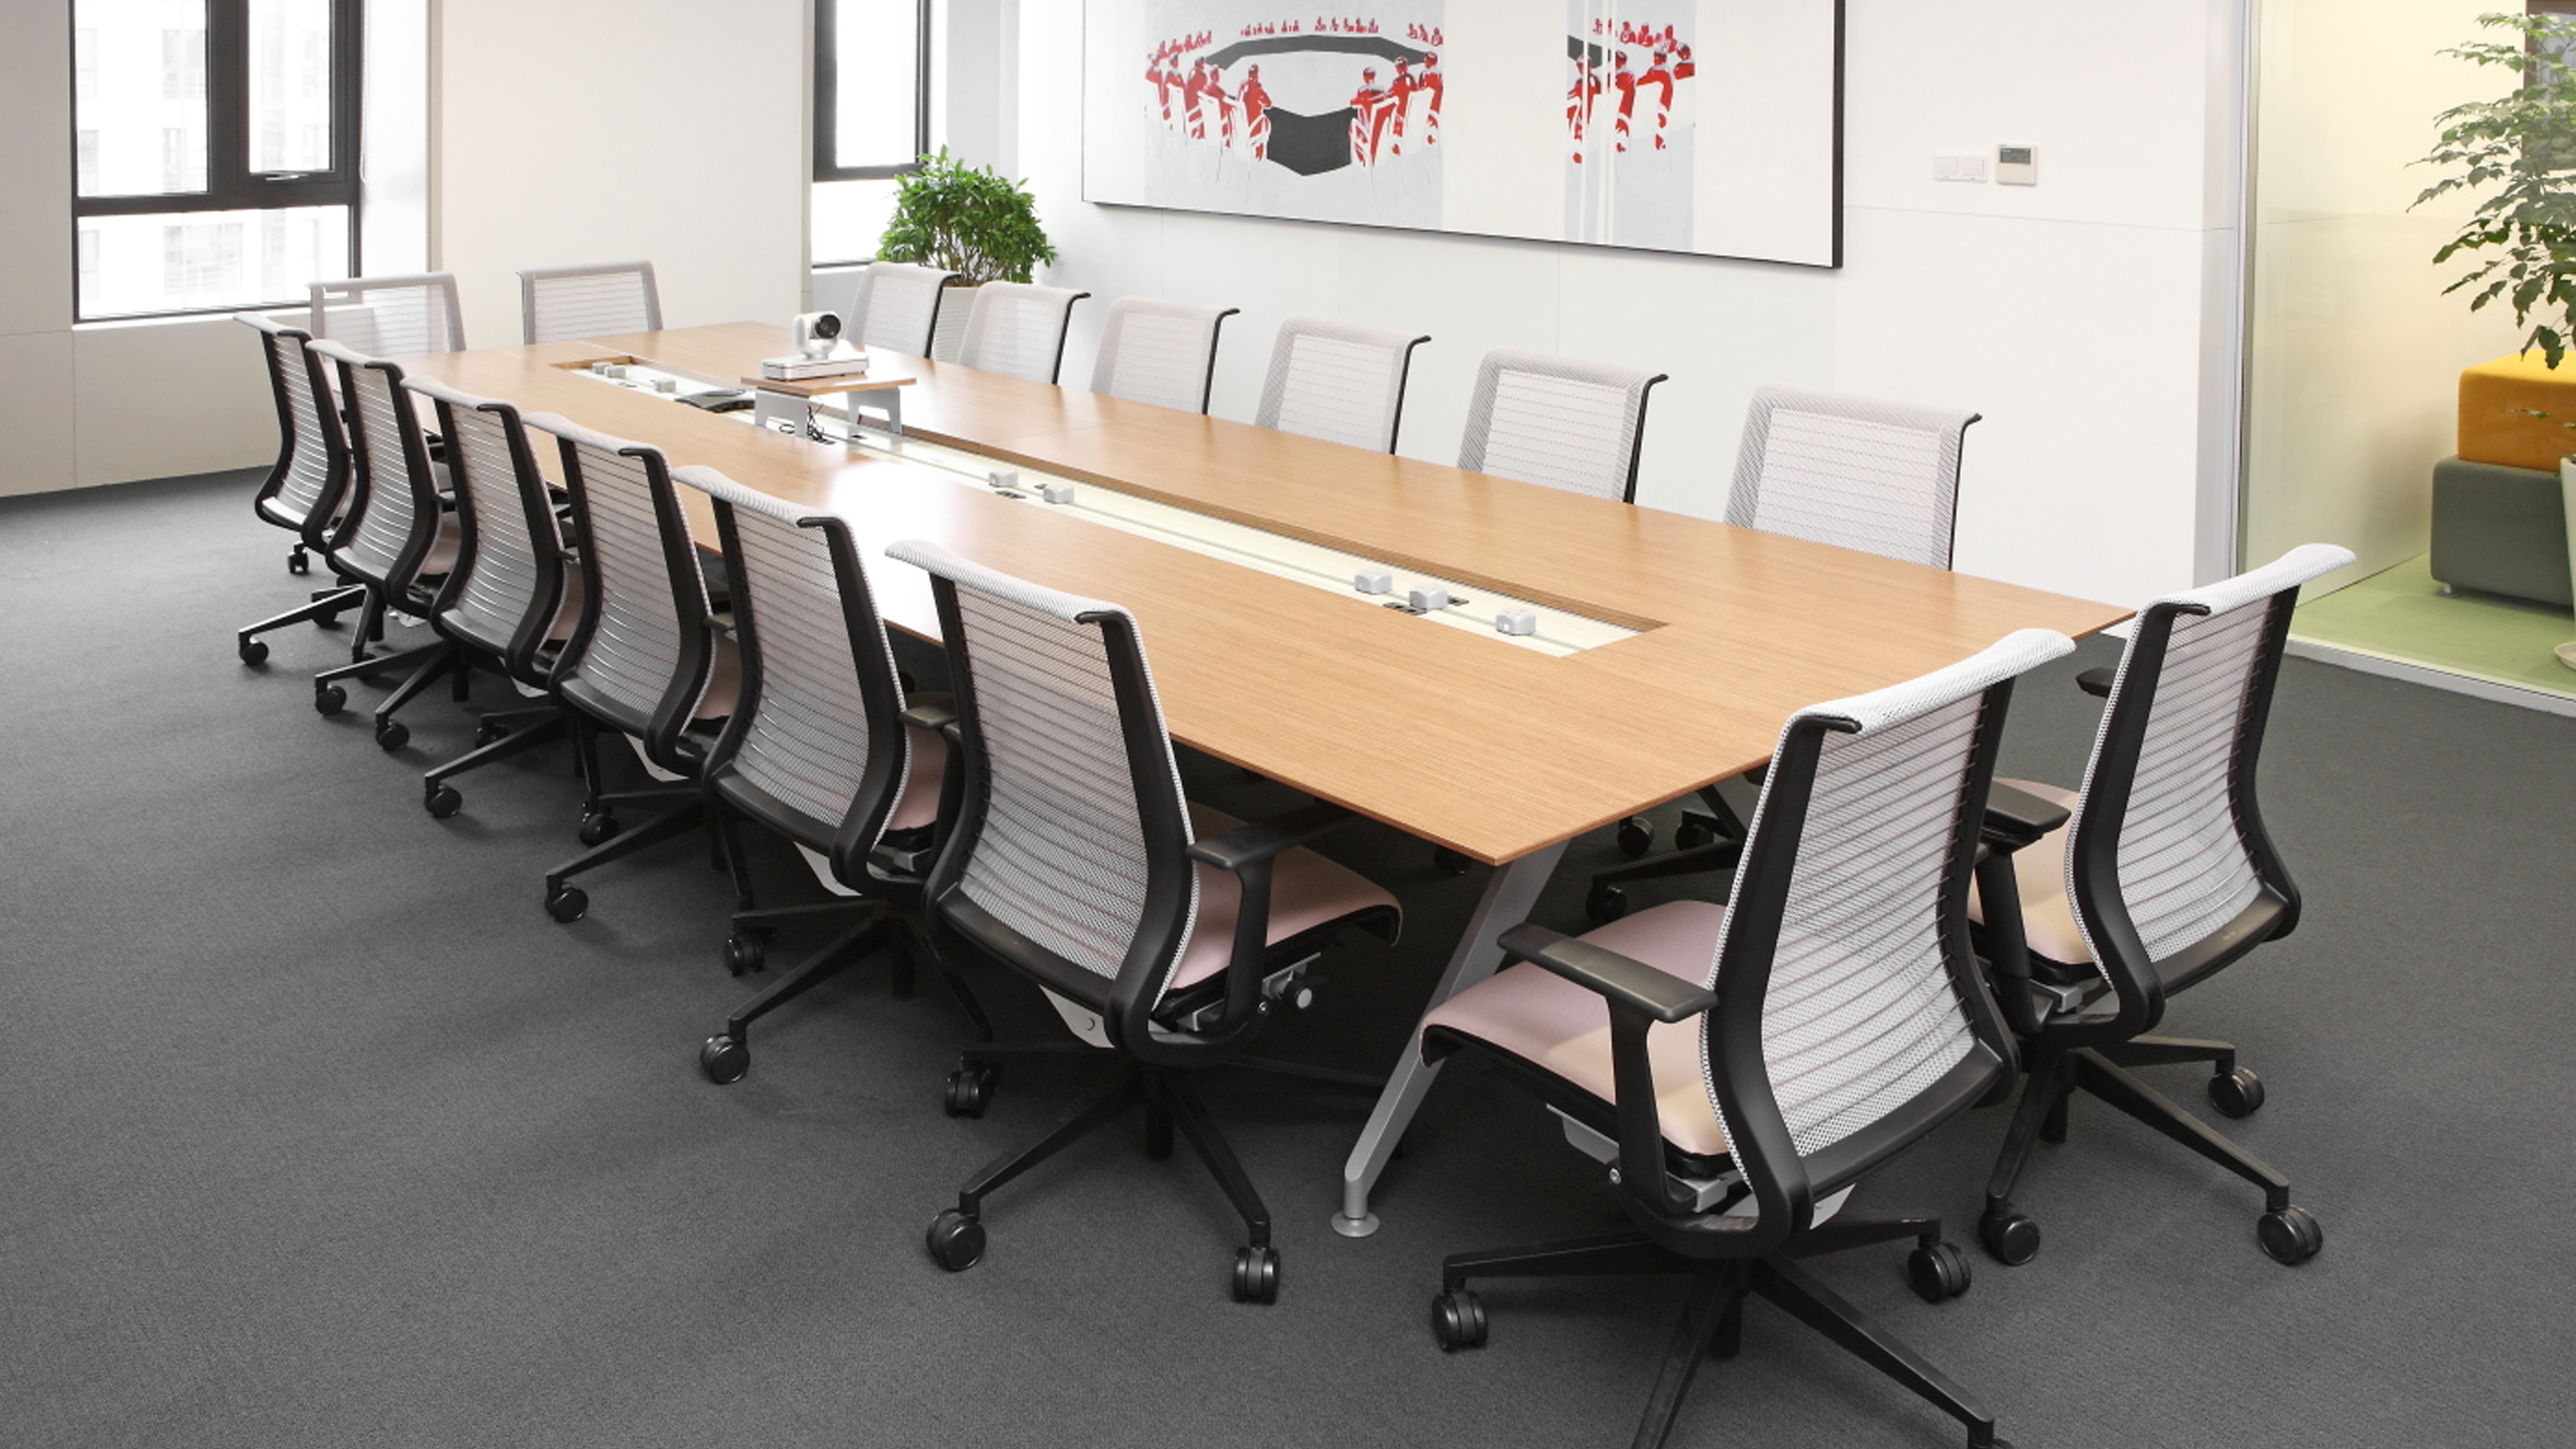 48 Four Point Eight Steelcase